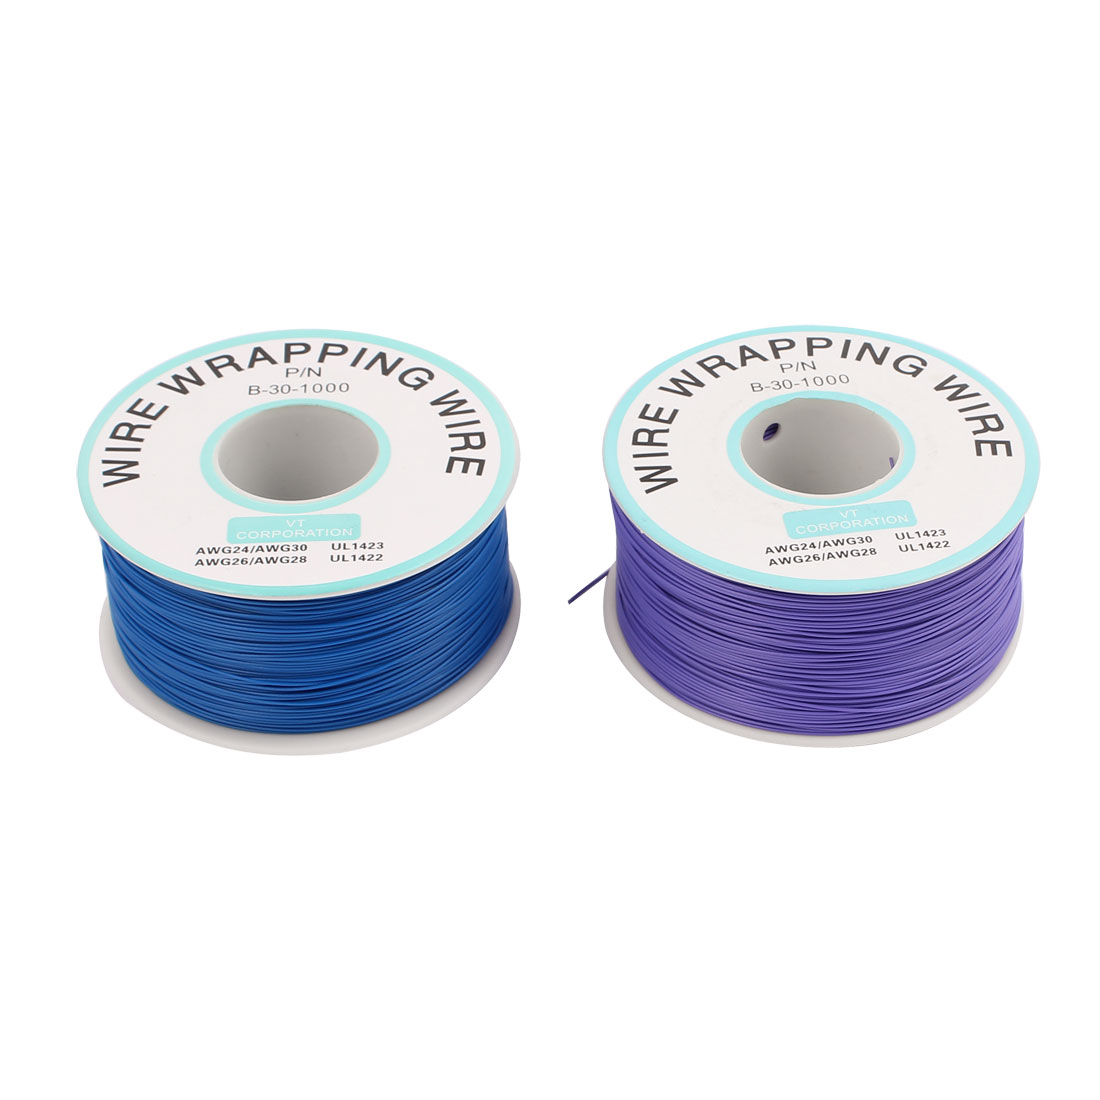 PCB Solder Purple Blue Flexible 0.25mm Core Dia 30AWG Wire Wrapping Wrap 820Ft